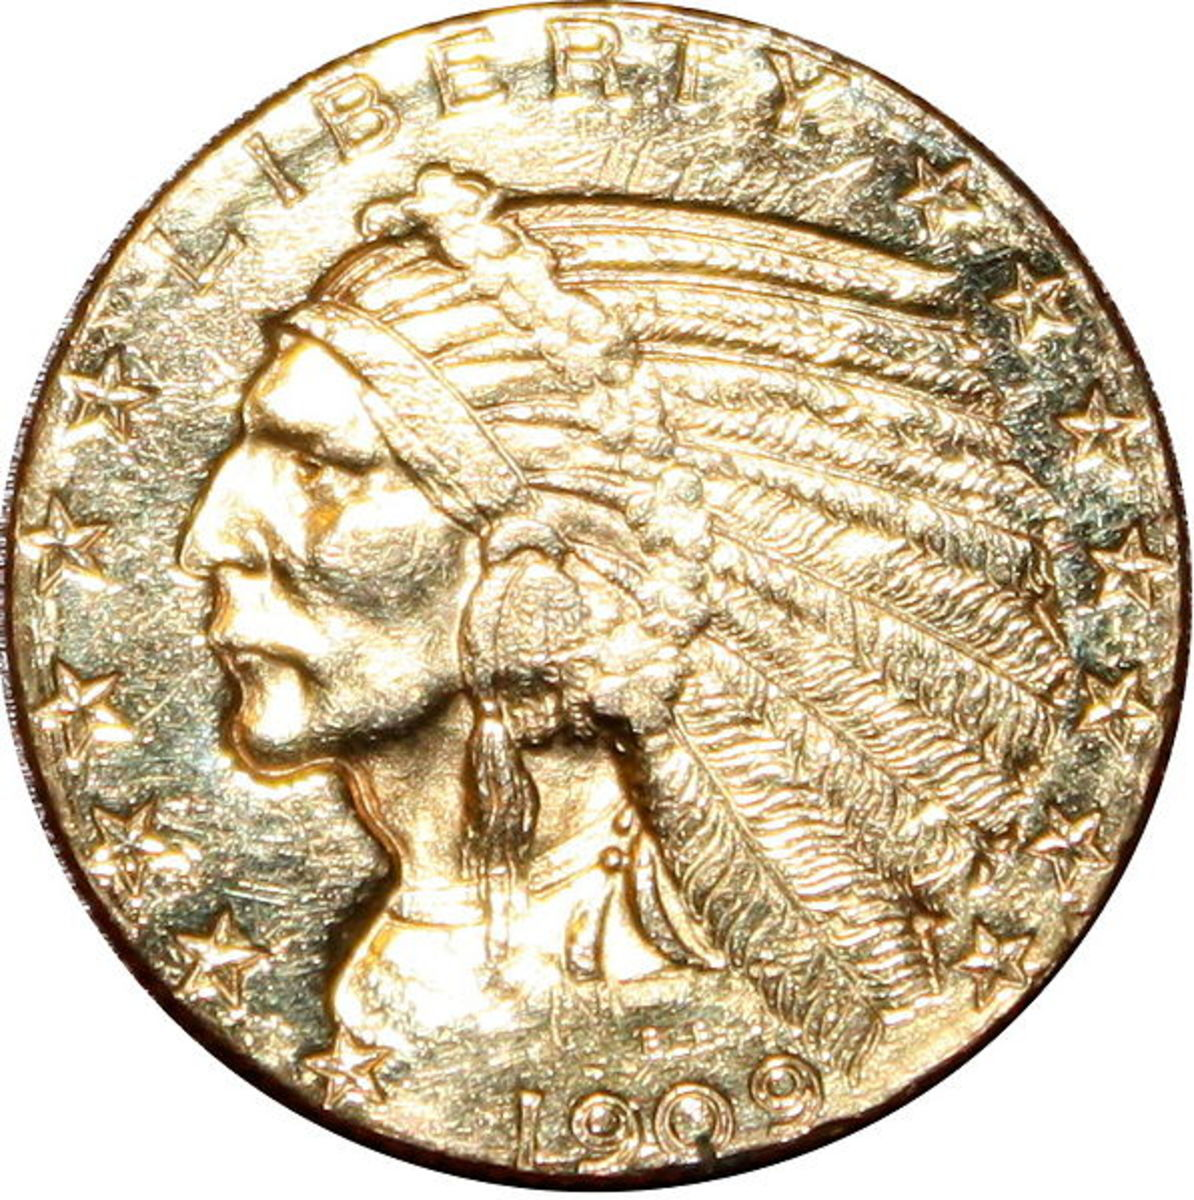 The Top 10 Most Beautiful US Coin Designs